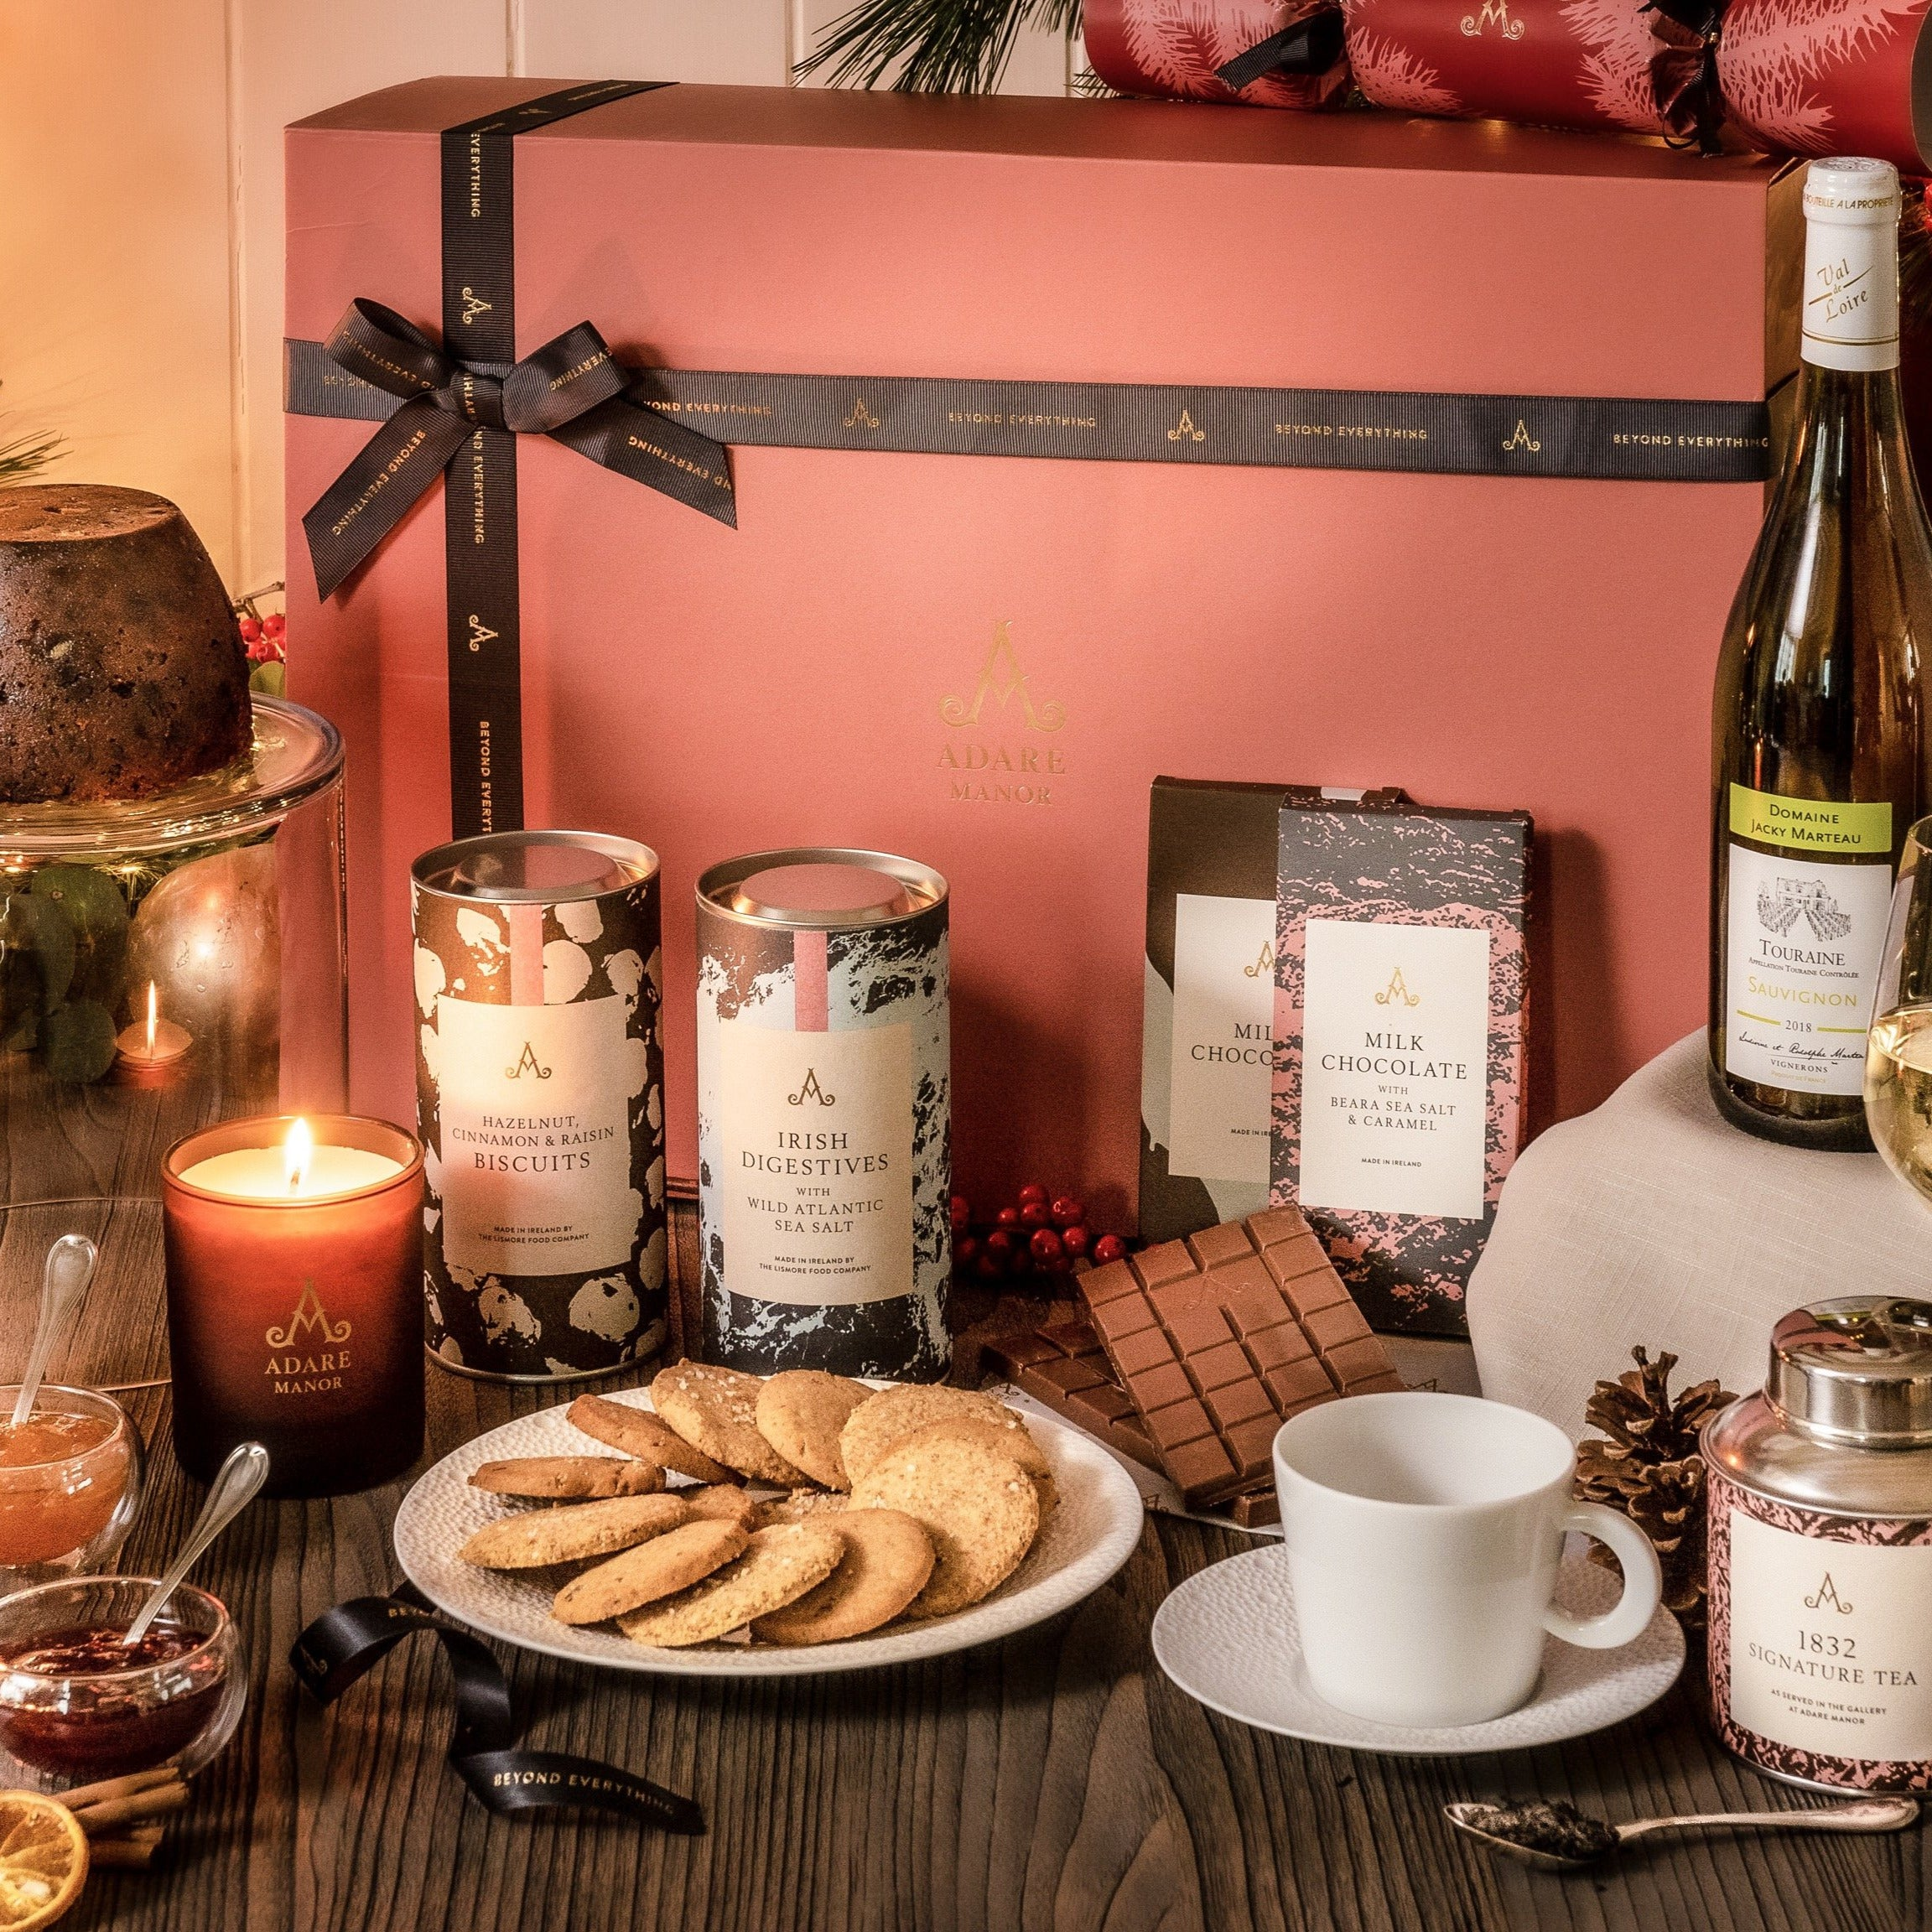 The Sweet and Indulgent Hamper